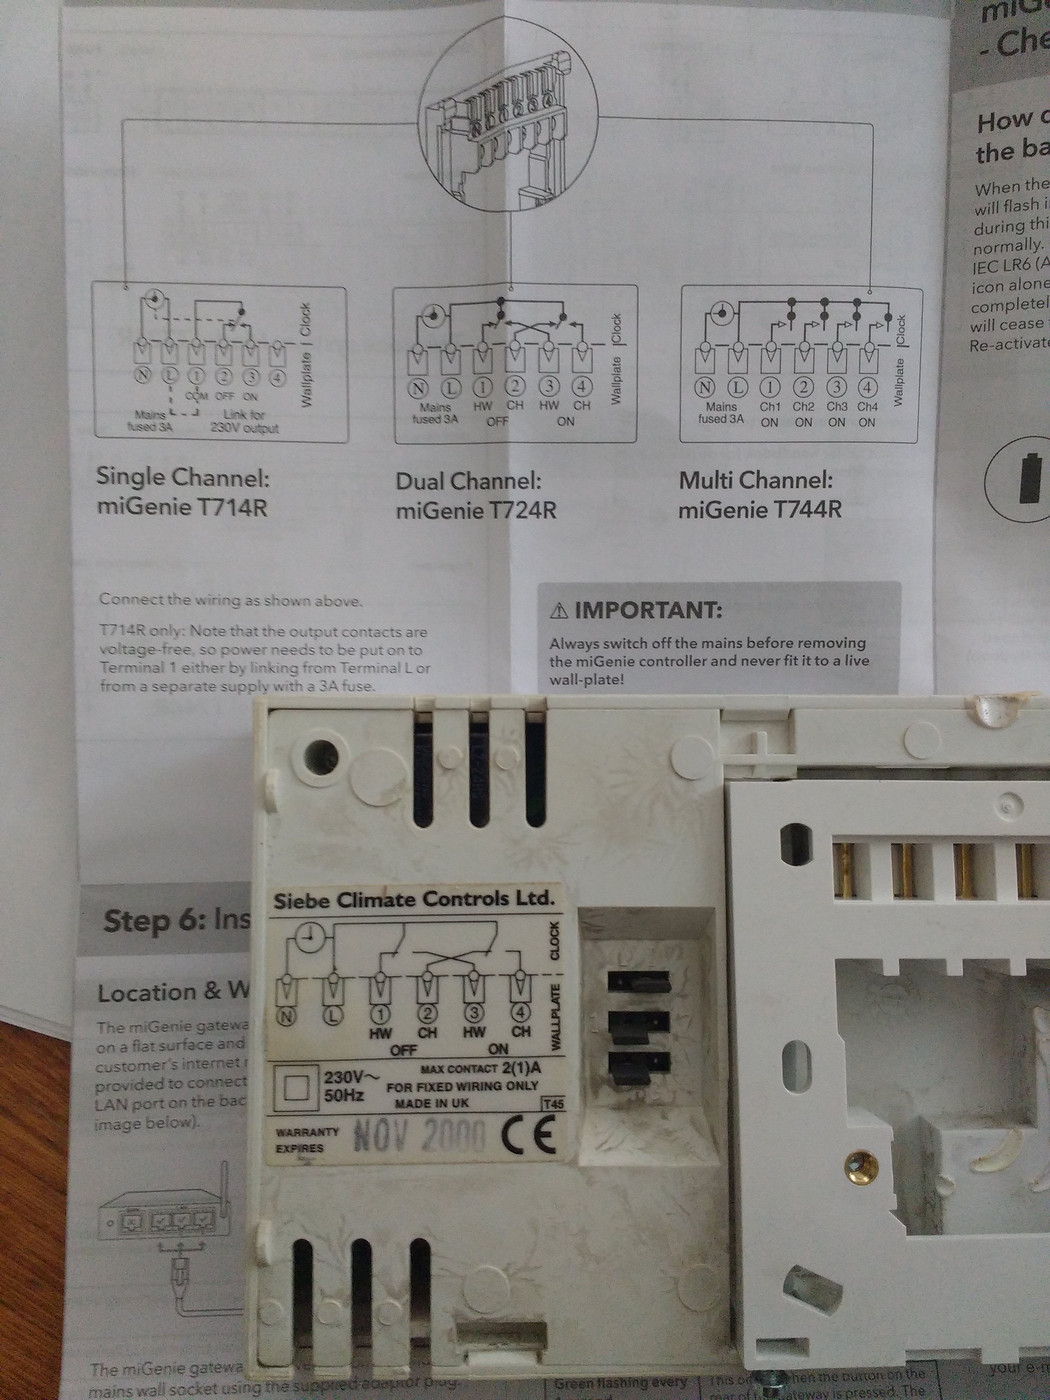 Best Wifi Enabled Thermostat Page 75 Homes Gardens And Diy Wiring Diagram For Tado Any Ideas If These 2 Events Could Be Connected